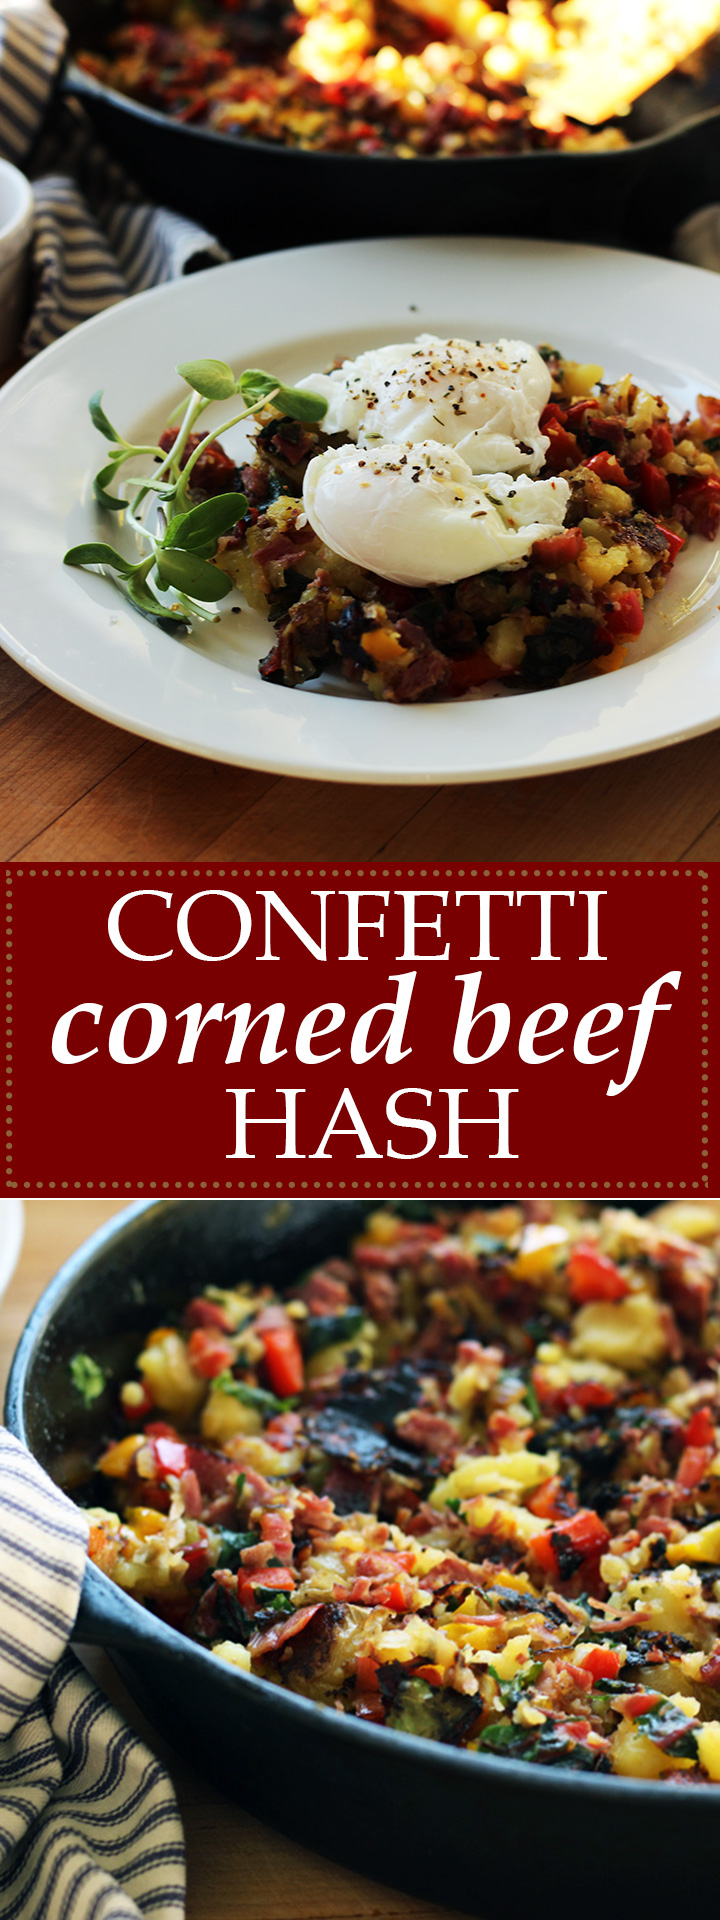 Confetti Corned Beef Hash | www.thetableofcontents.co